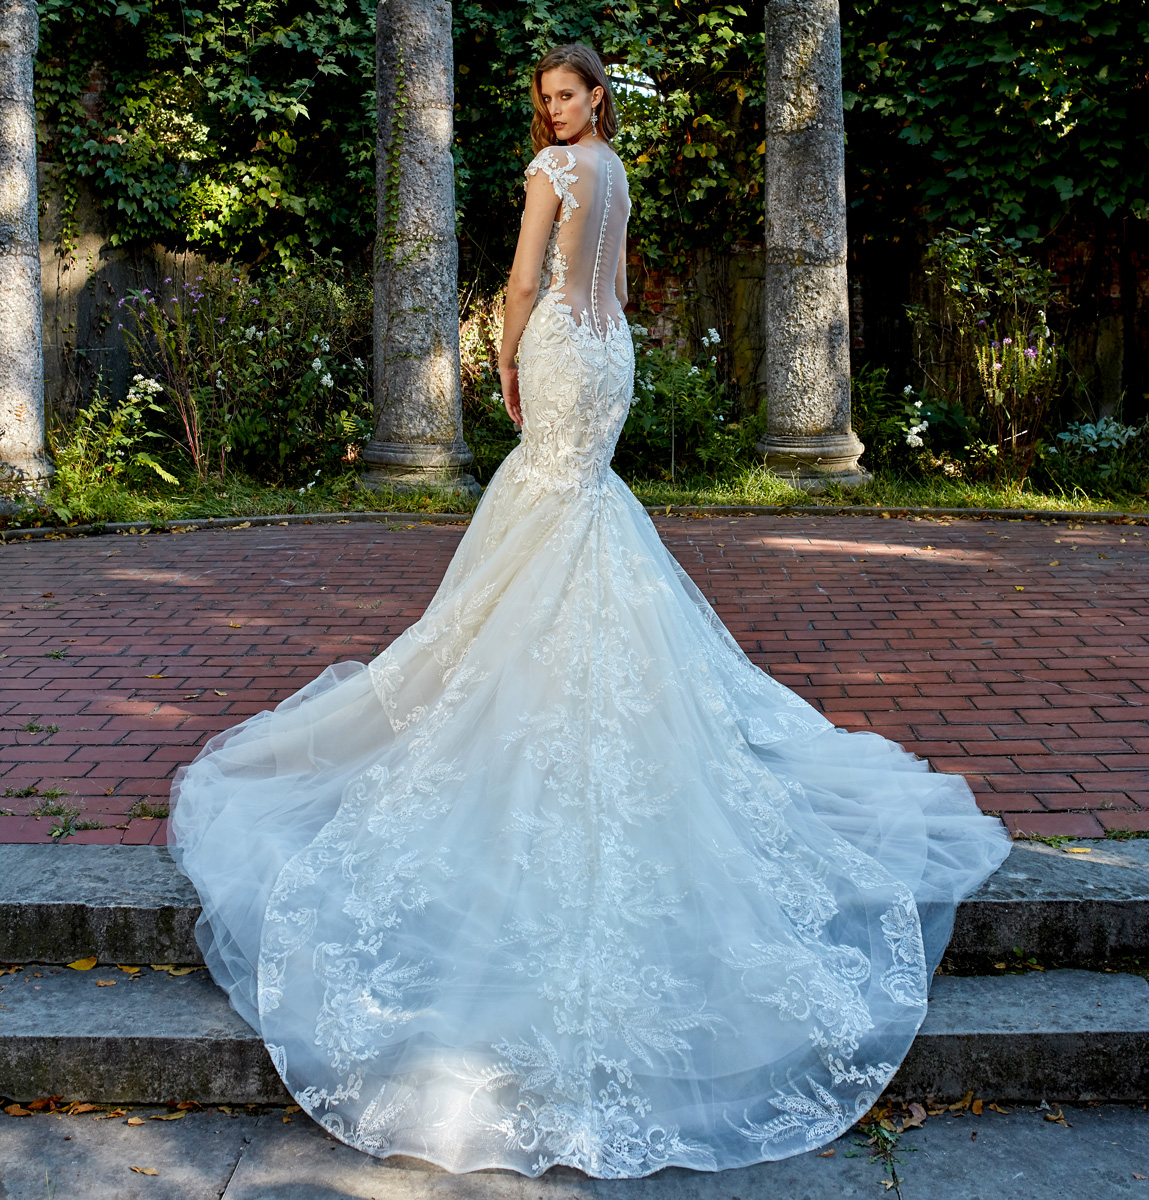 Bridal Gowns by Eve of Milady - Boutique wedding dresses Style 1614